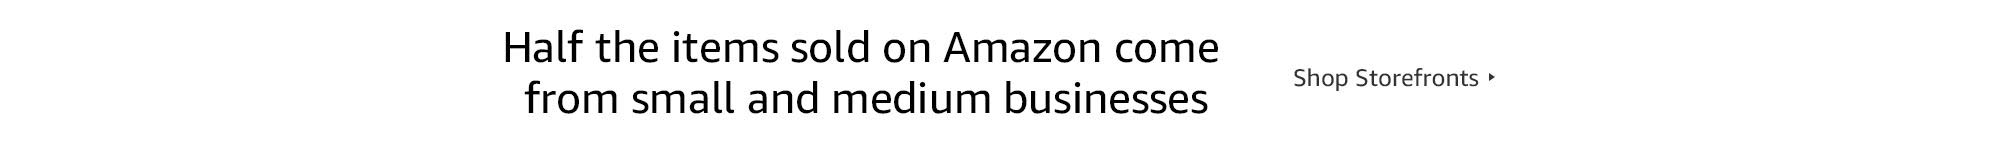 Small and medium businesses Amazon storefronts